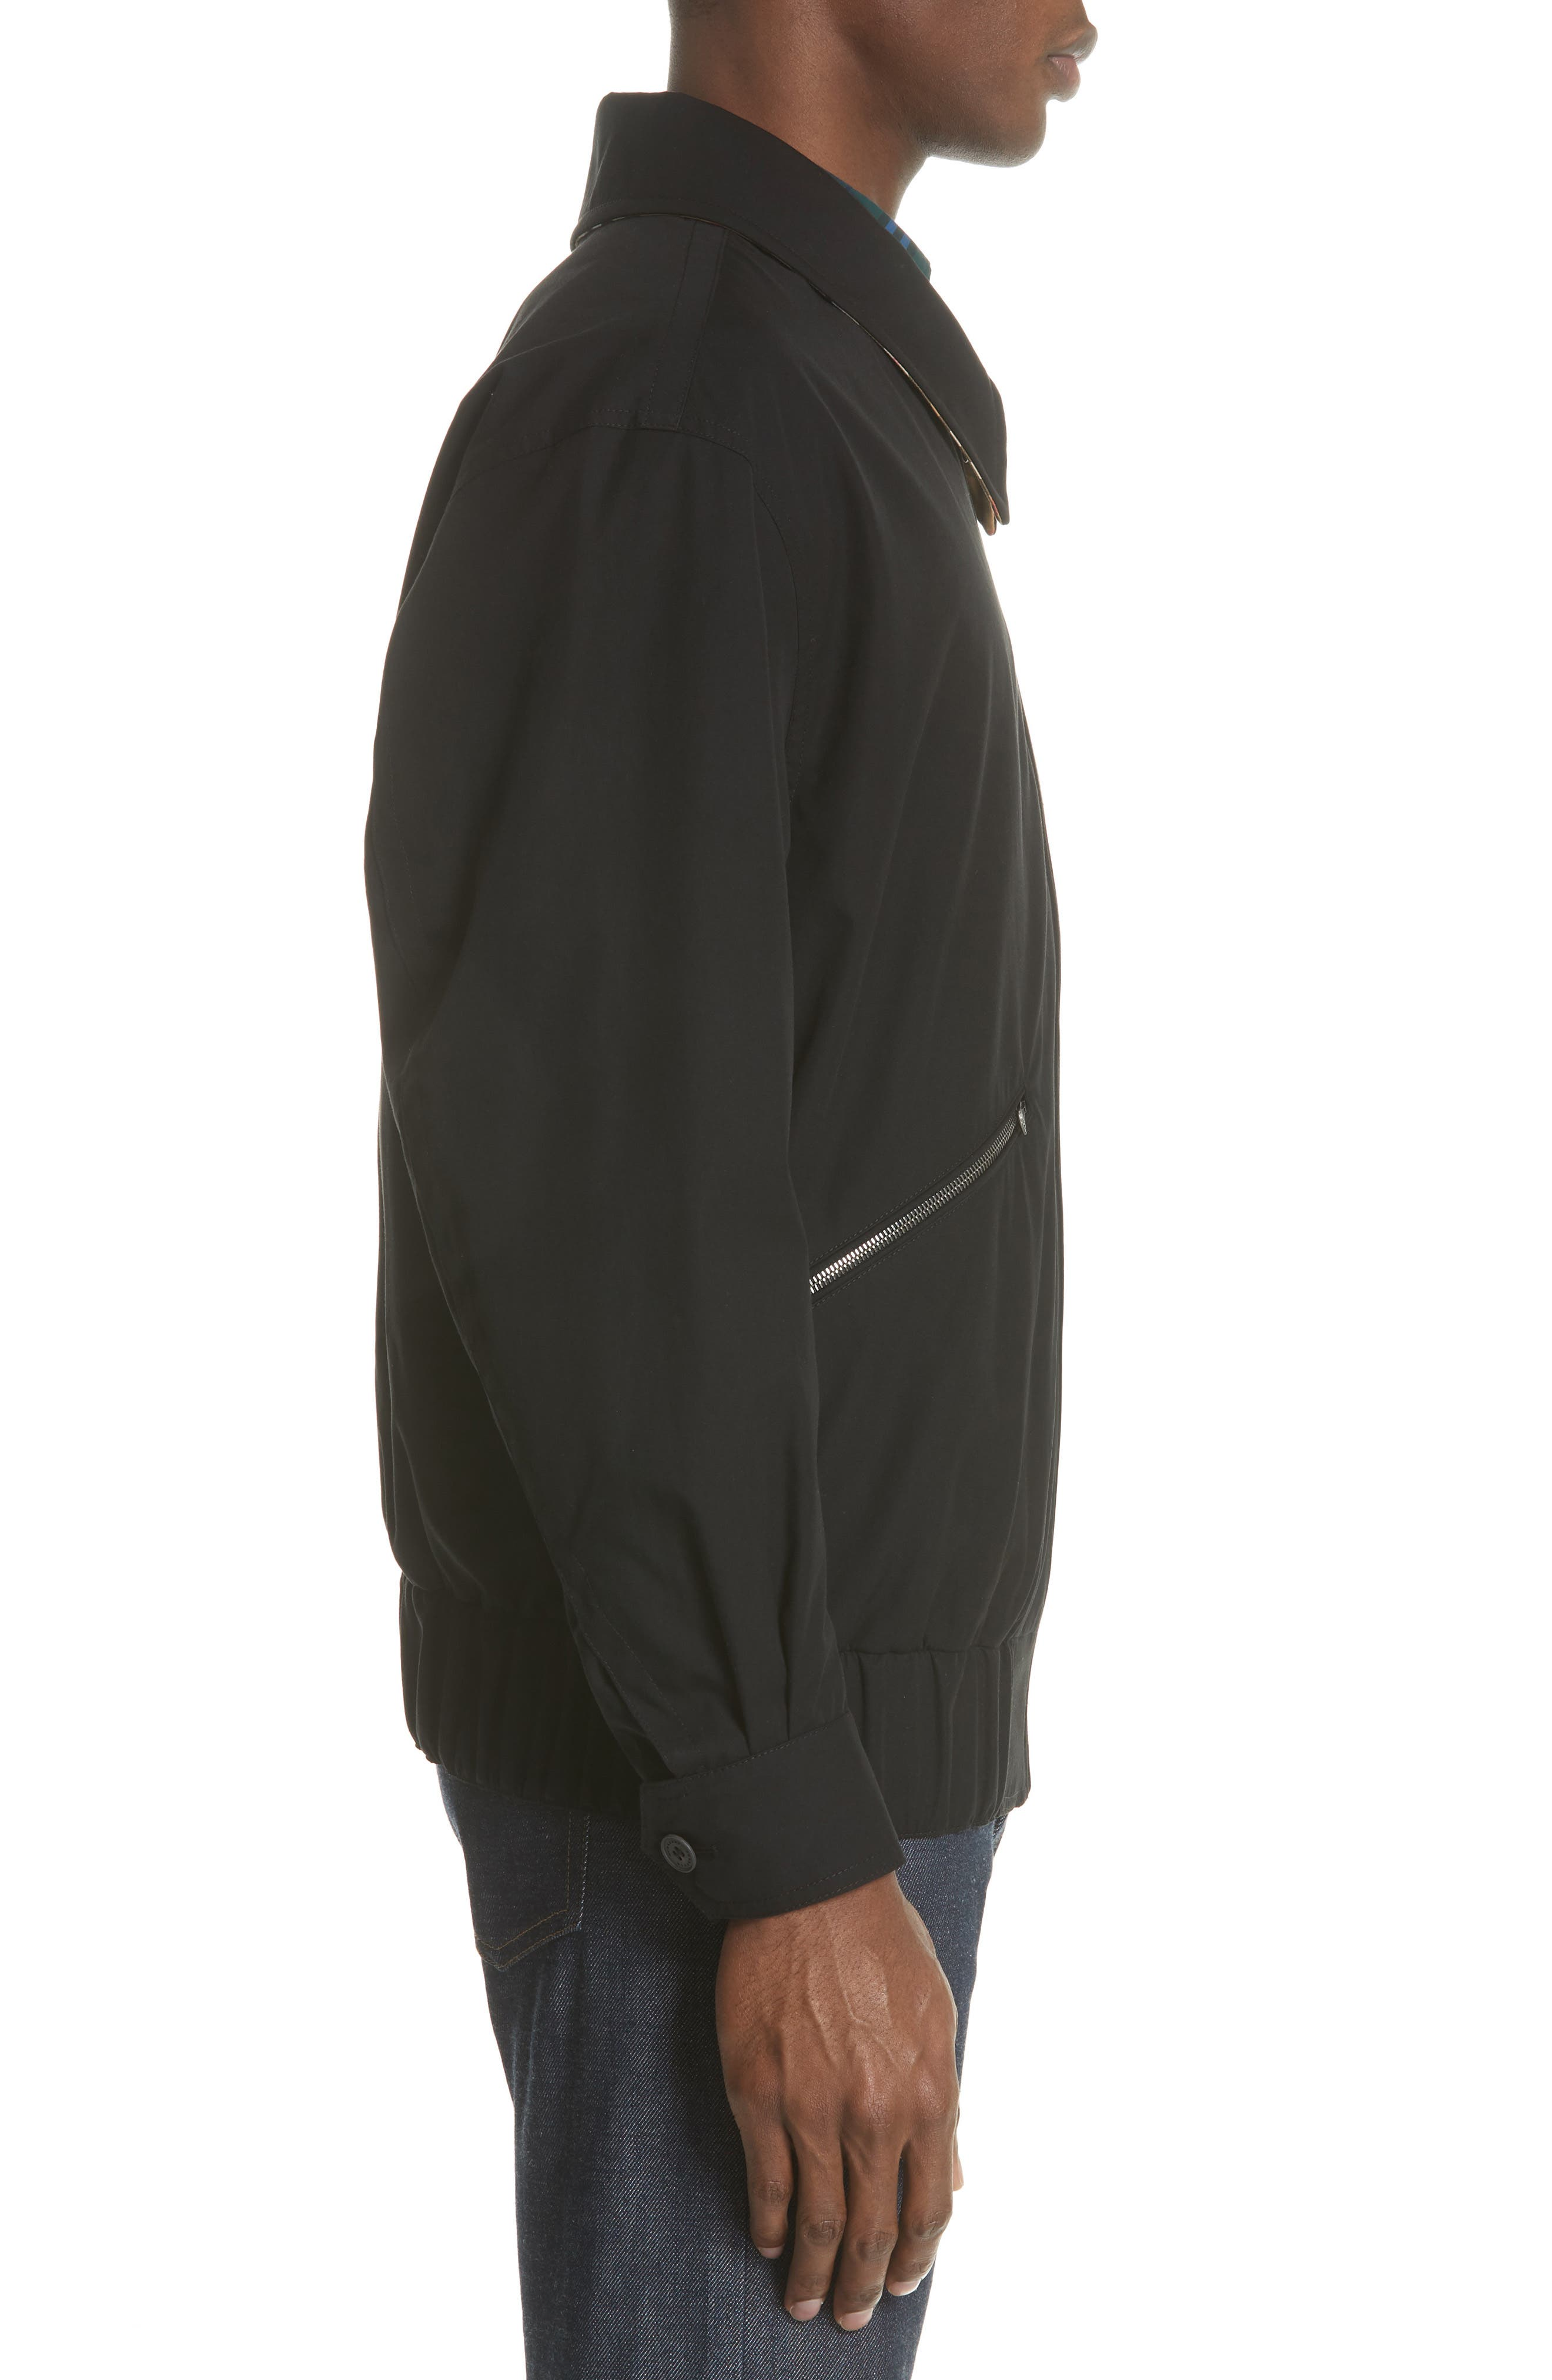 Loweswater Jacket,                             Alternate thumbnail 3, color,                             Black